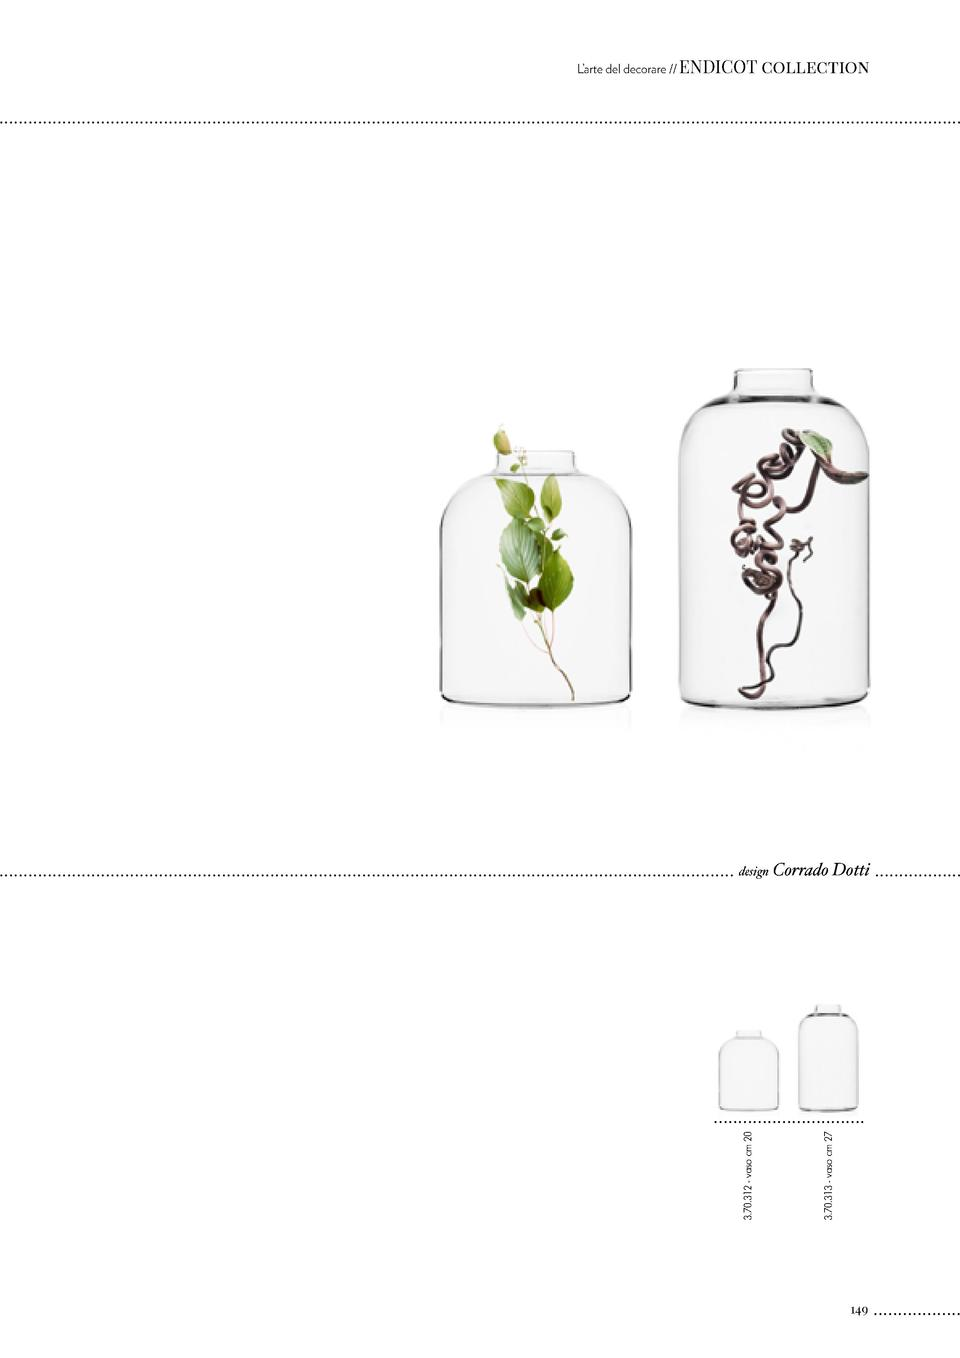 collection  3.70.312 - vaso cm 20  design  Corrado Dotti  3.70.313 - vaso cm 27  L   arte del decorare    ENDICOT  149